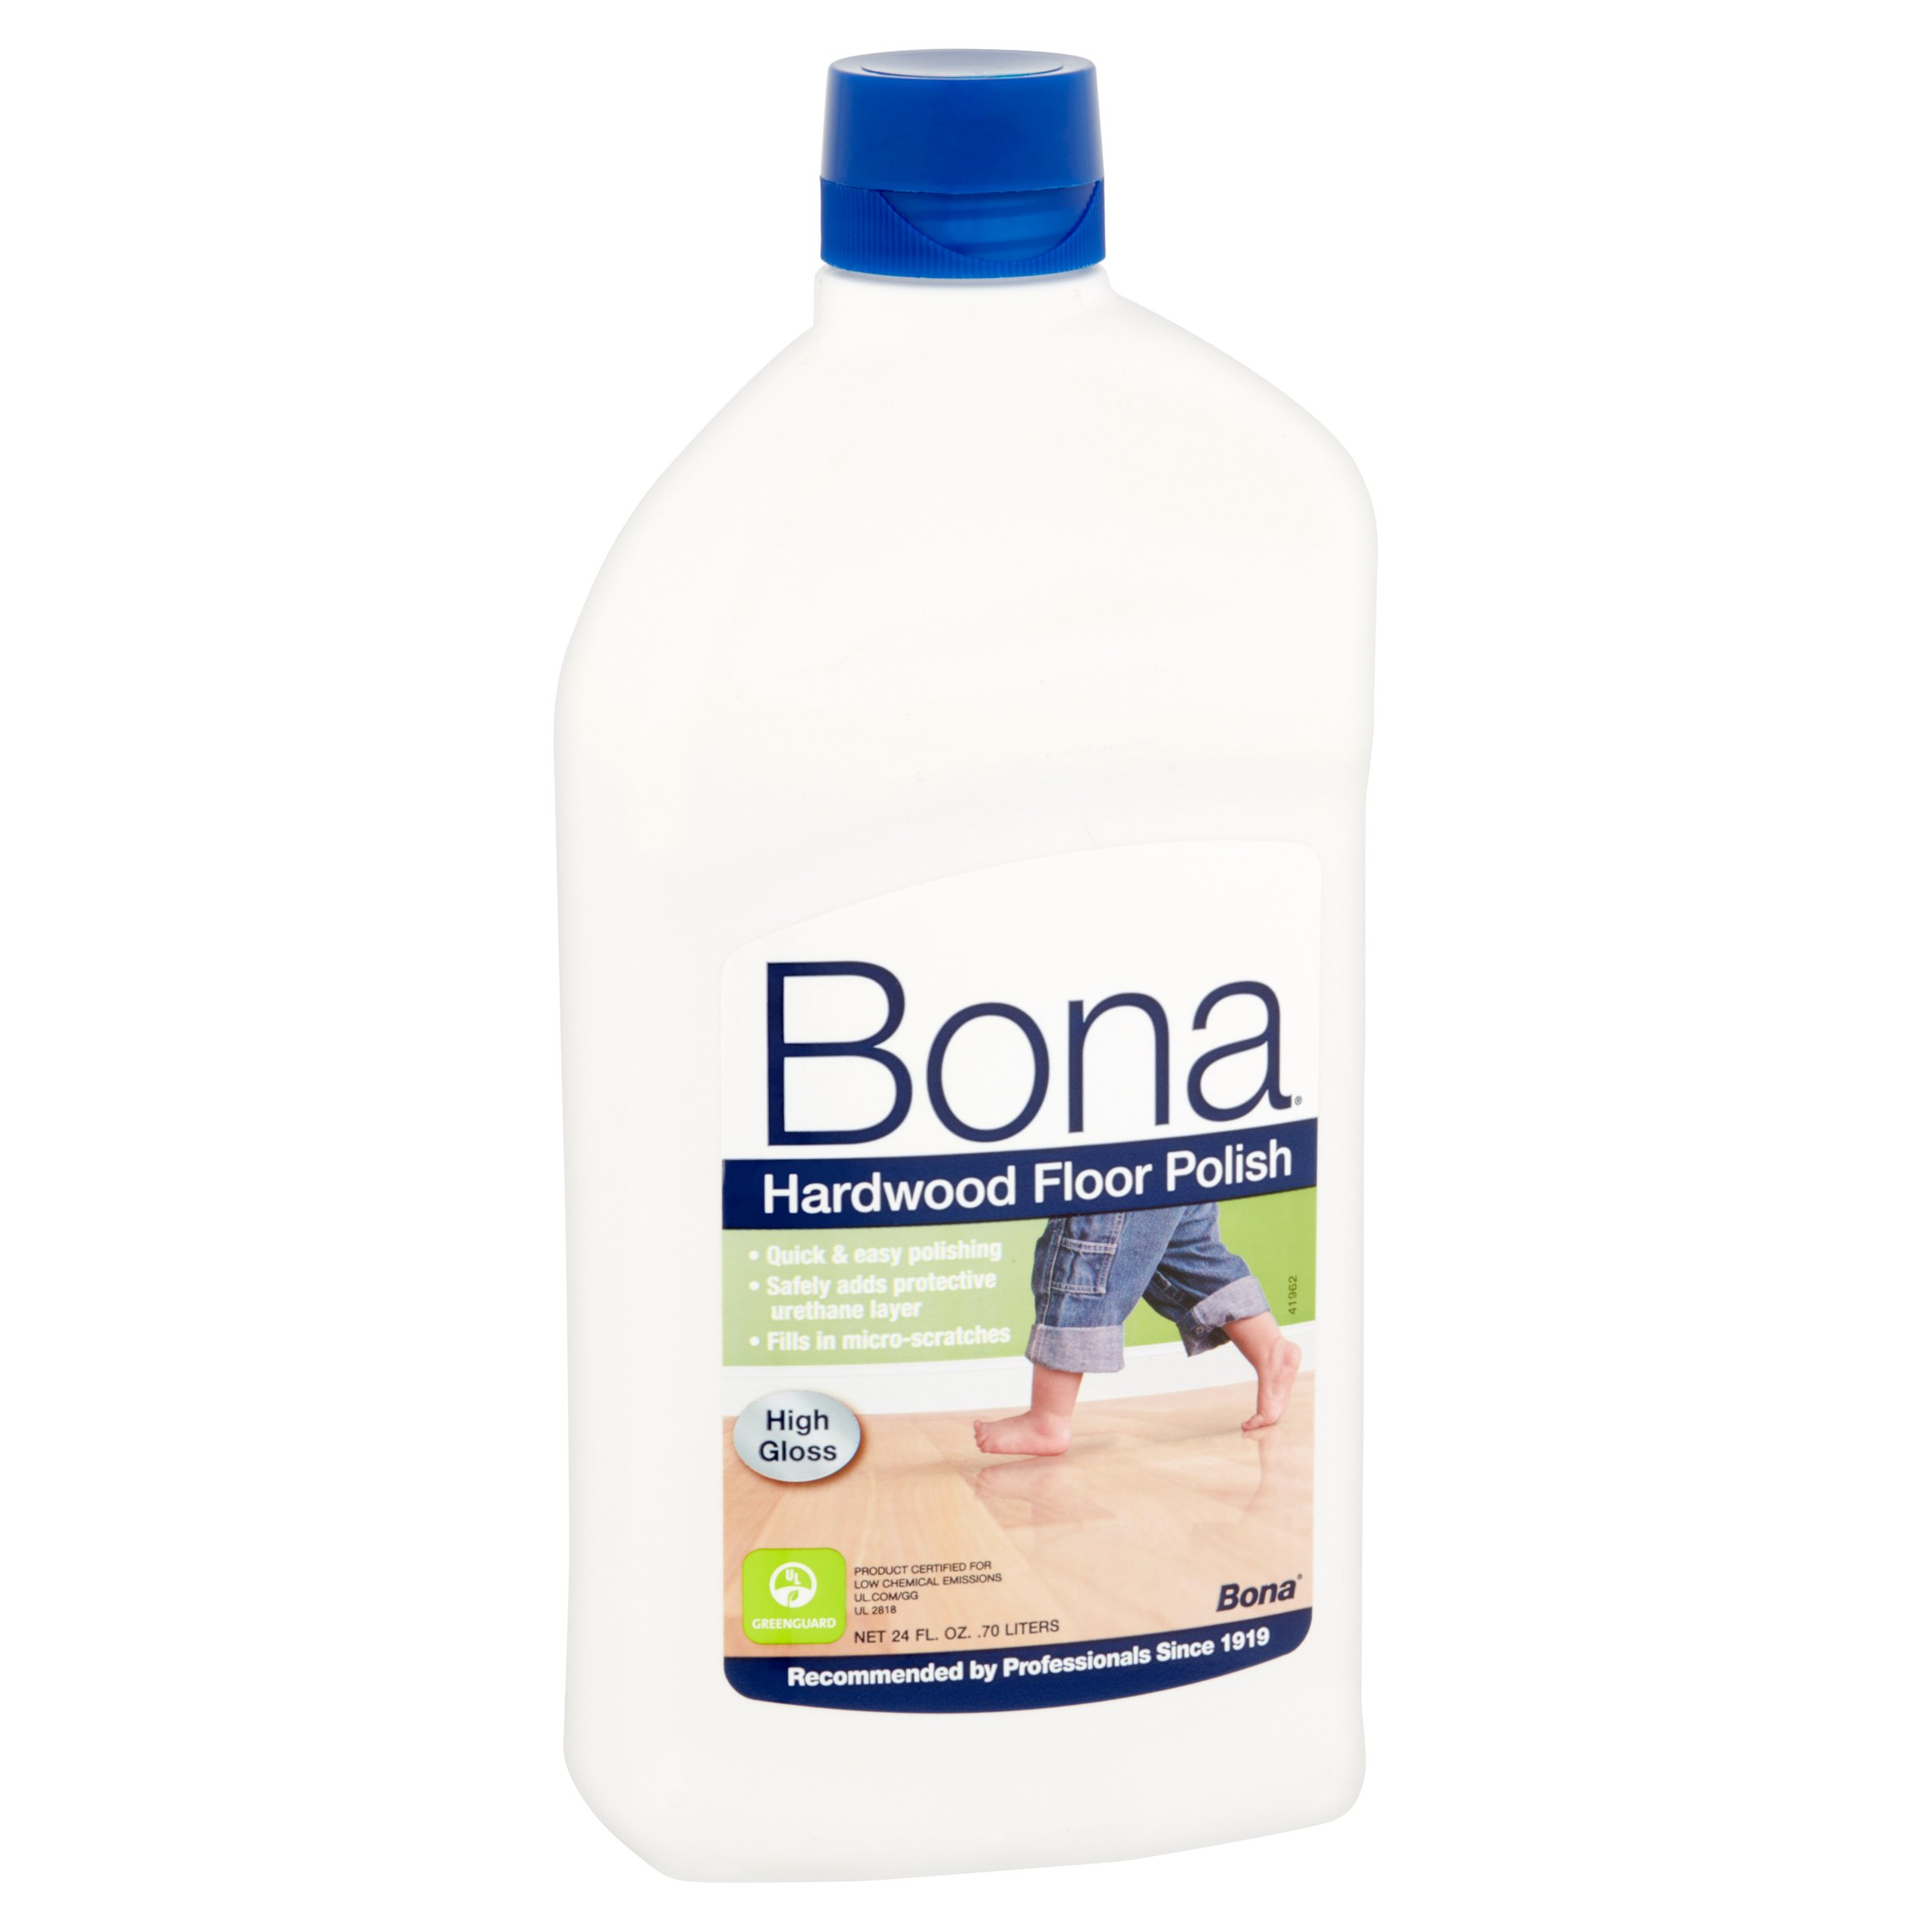 bona swedish formula high gloss hardwood floor polish, 24 oz